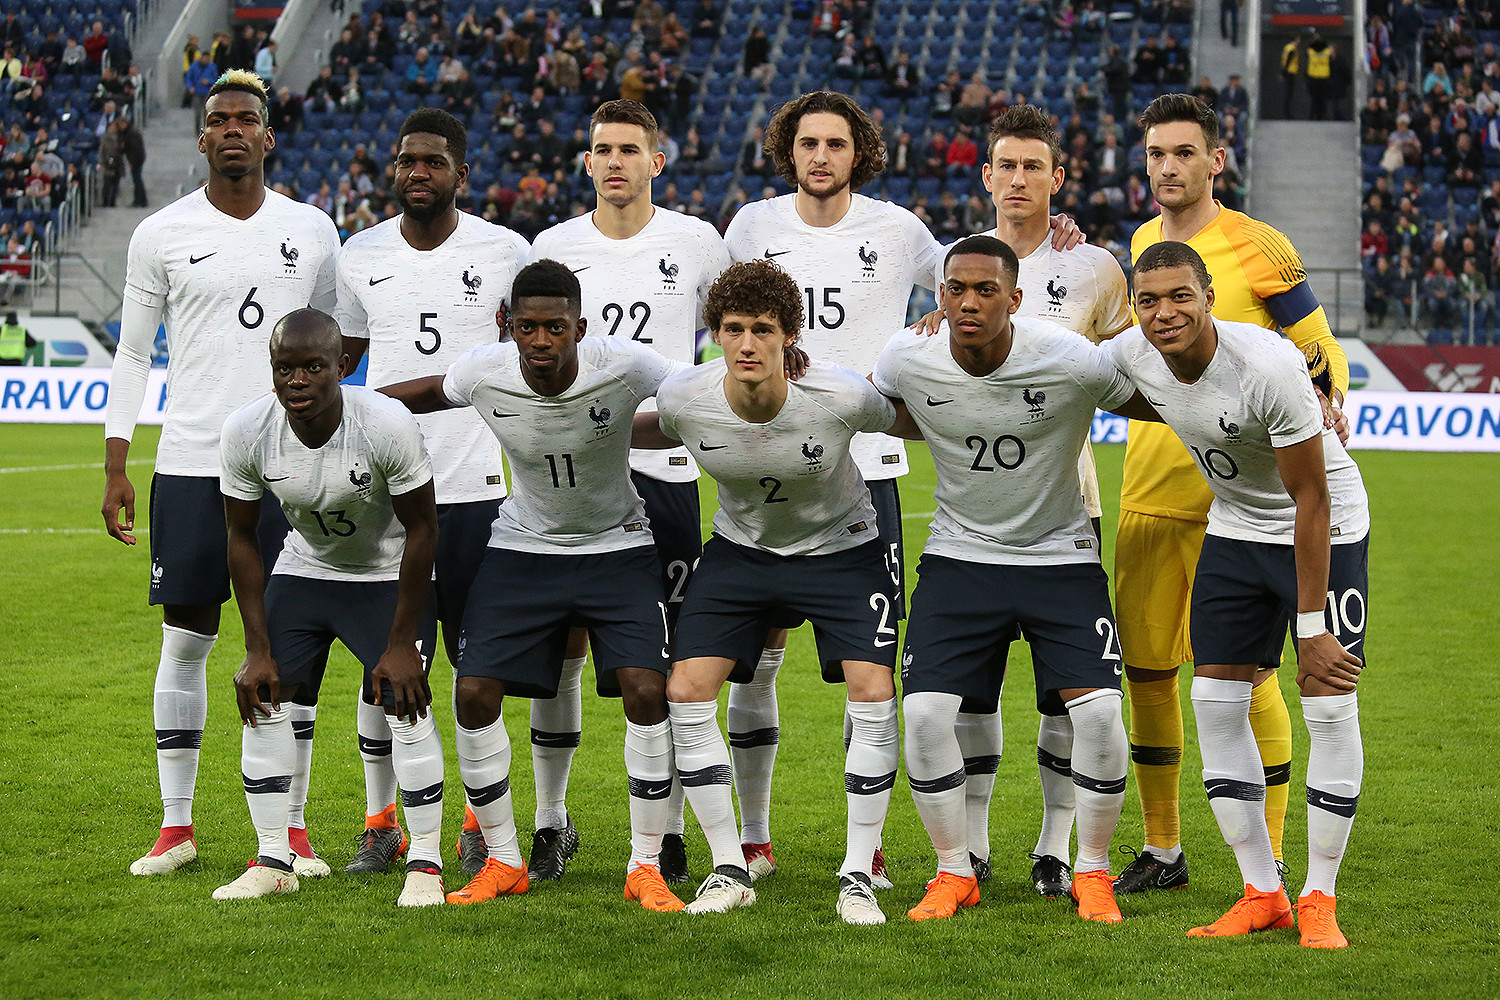 File France national football team 2018 jpg   Wikimedia Commons File France national football team 2018 jpg